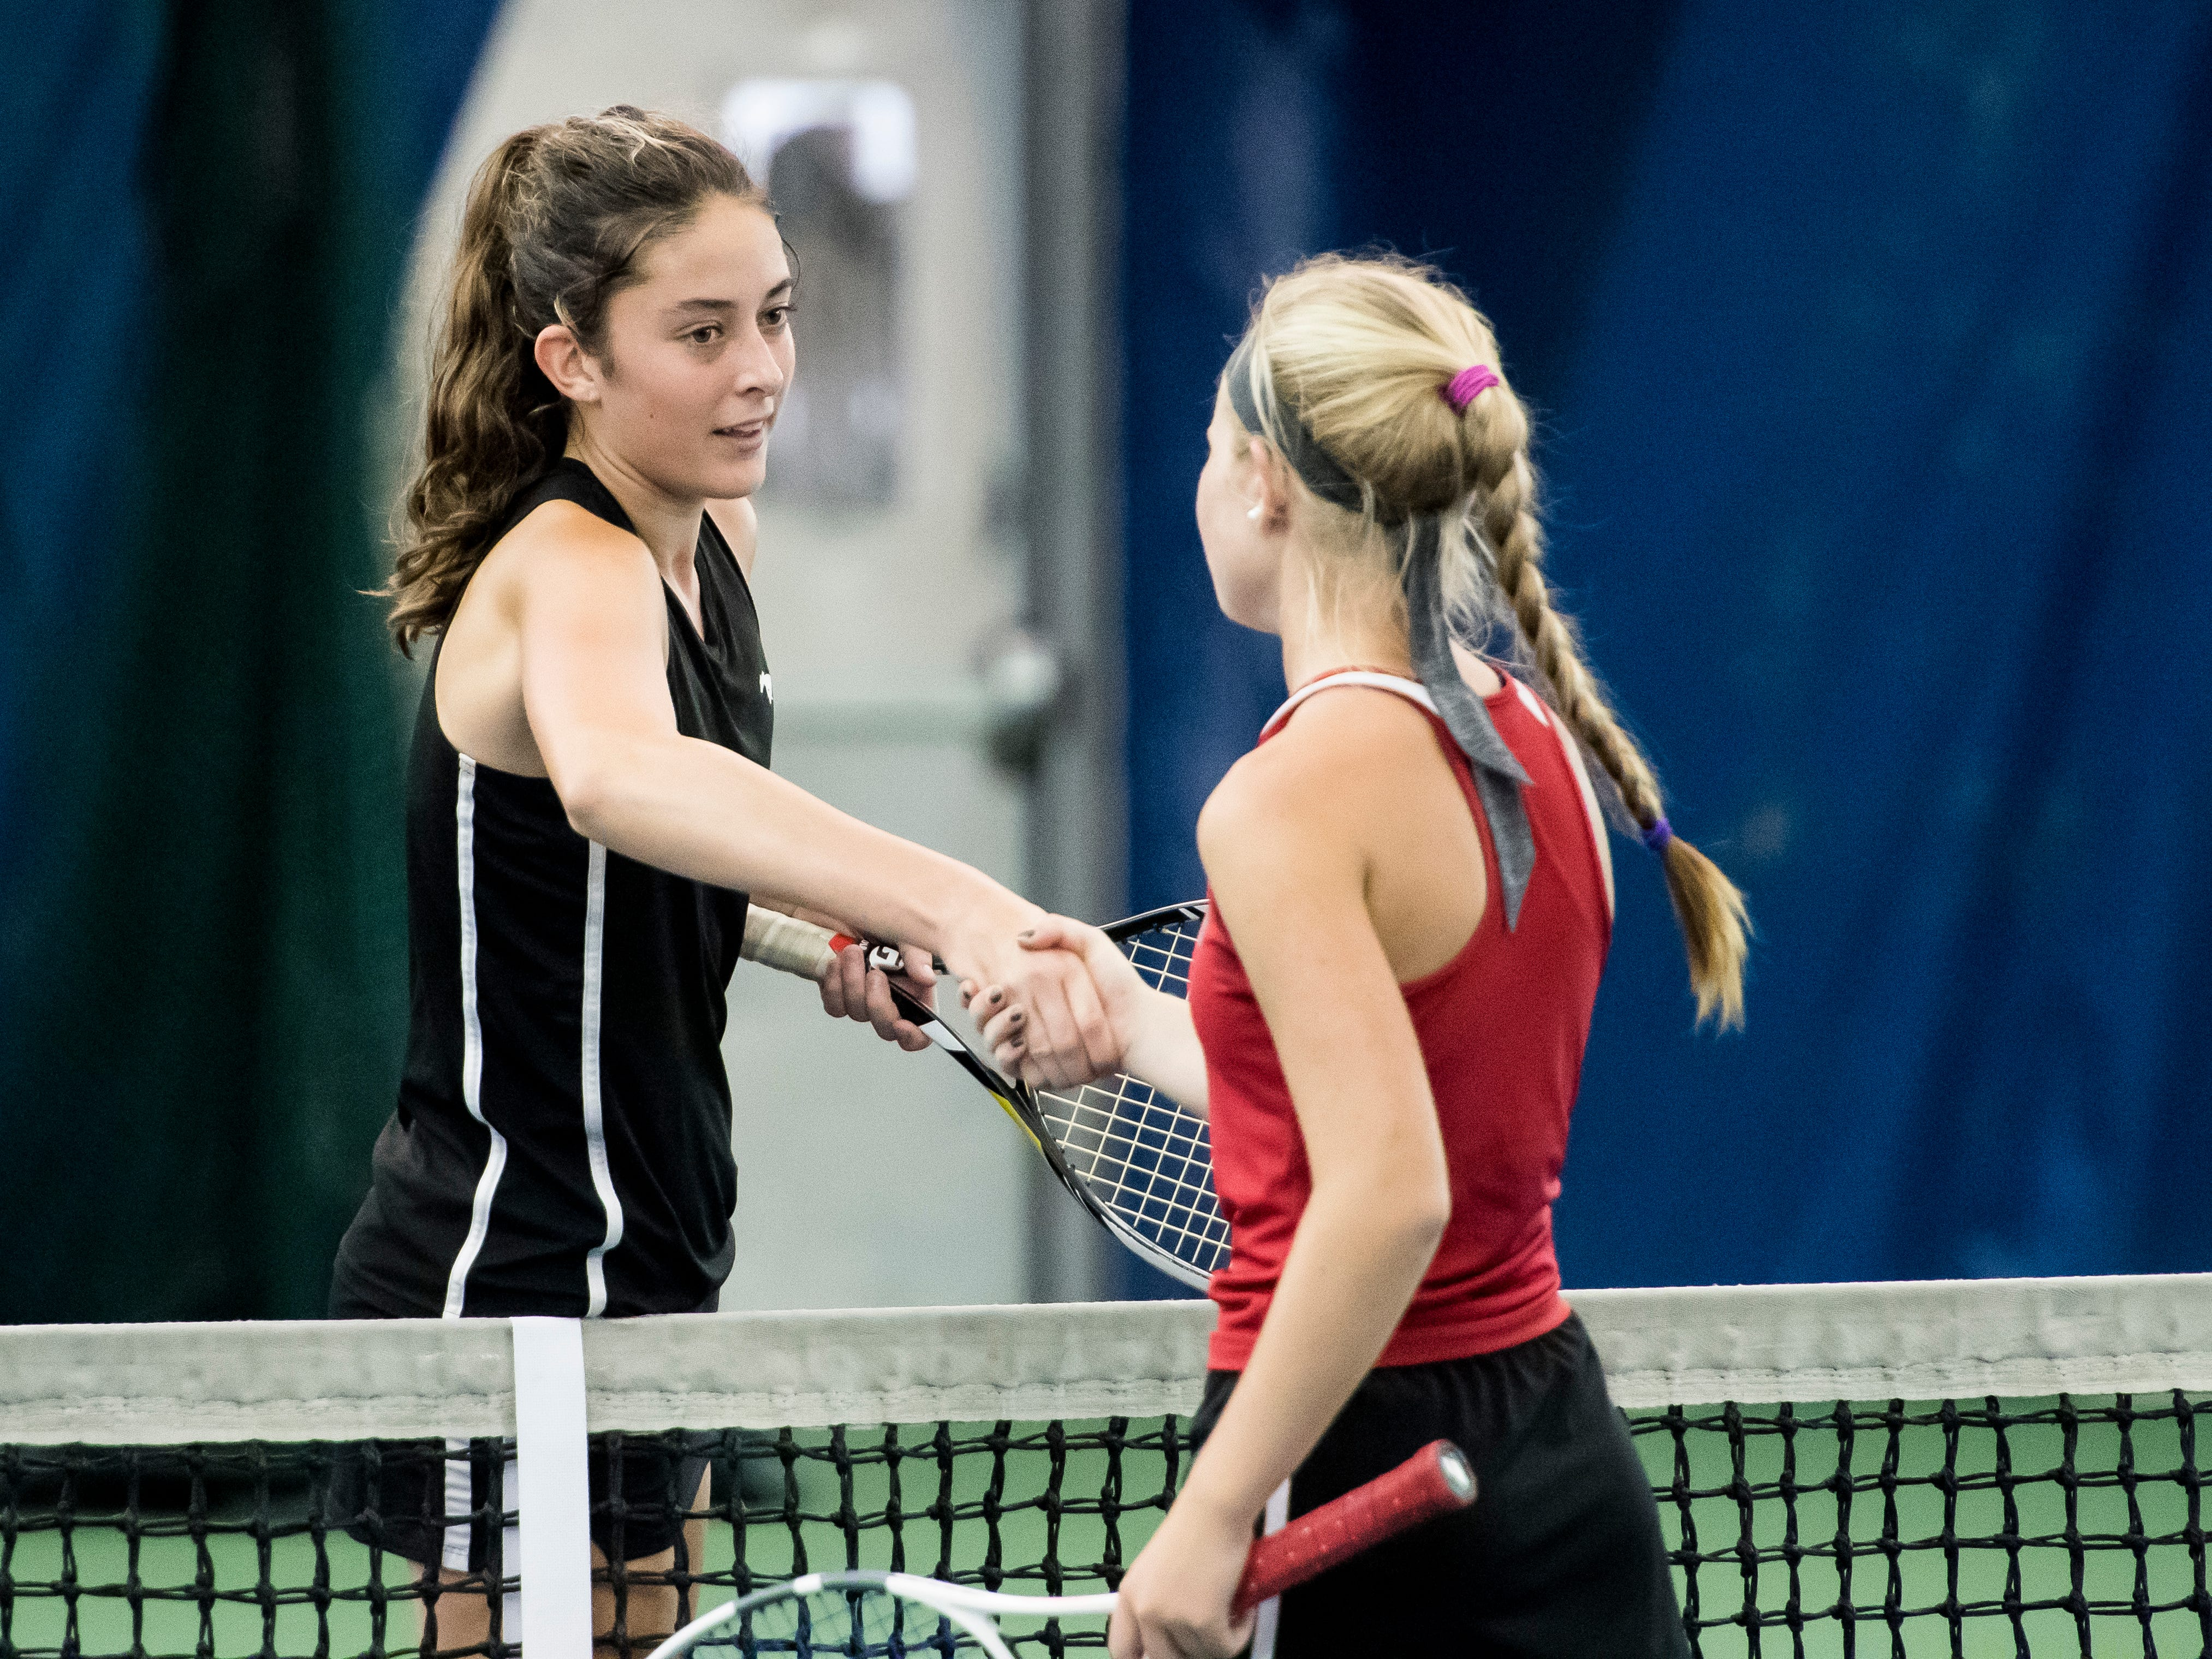 South Western's Michaela Sentz shakes hands with Susquehannock's Julianne Cassady following a semifinal match in the YAIAA 3A singles tournament at Wisehaven Tennis Center in York on October 6, 2018. Sentz won 6-1, 6-0.